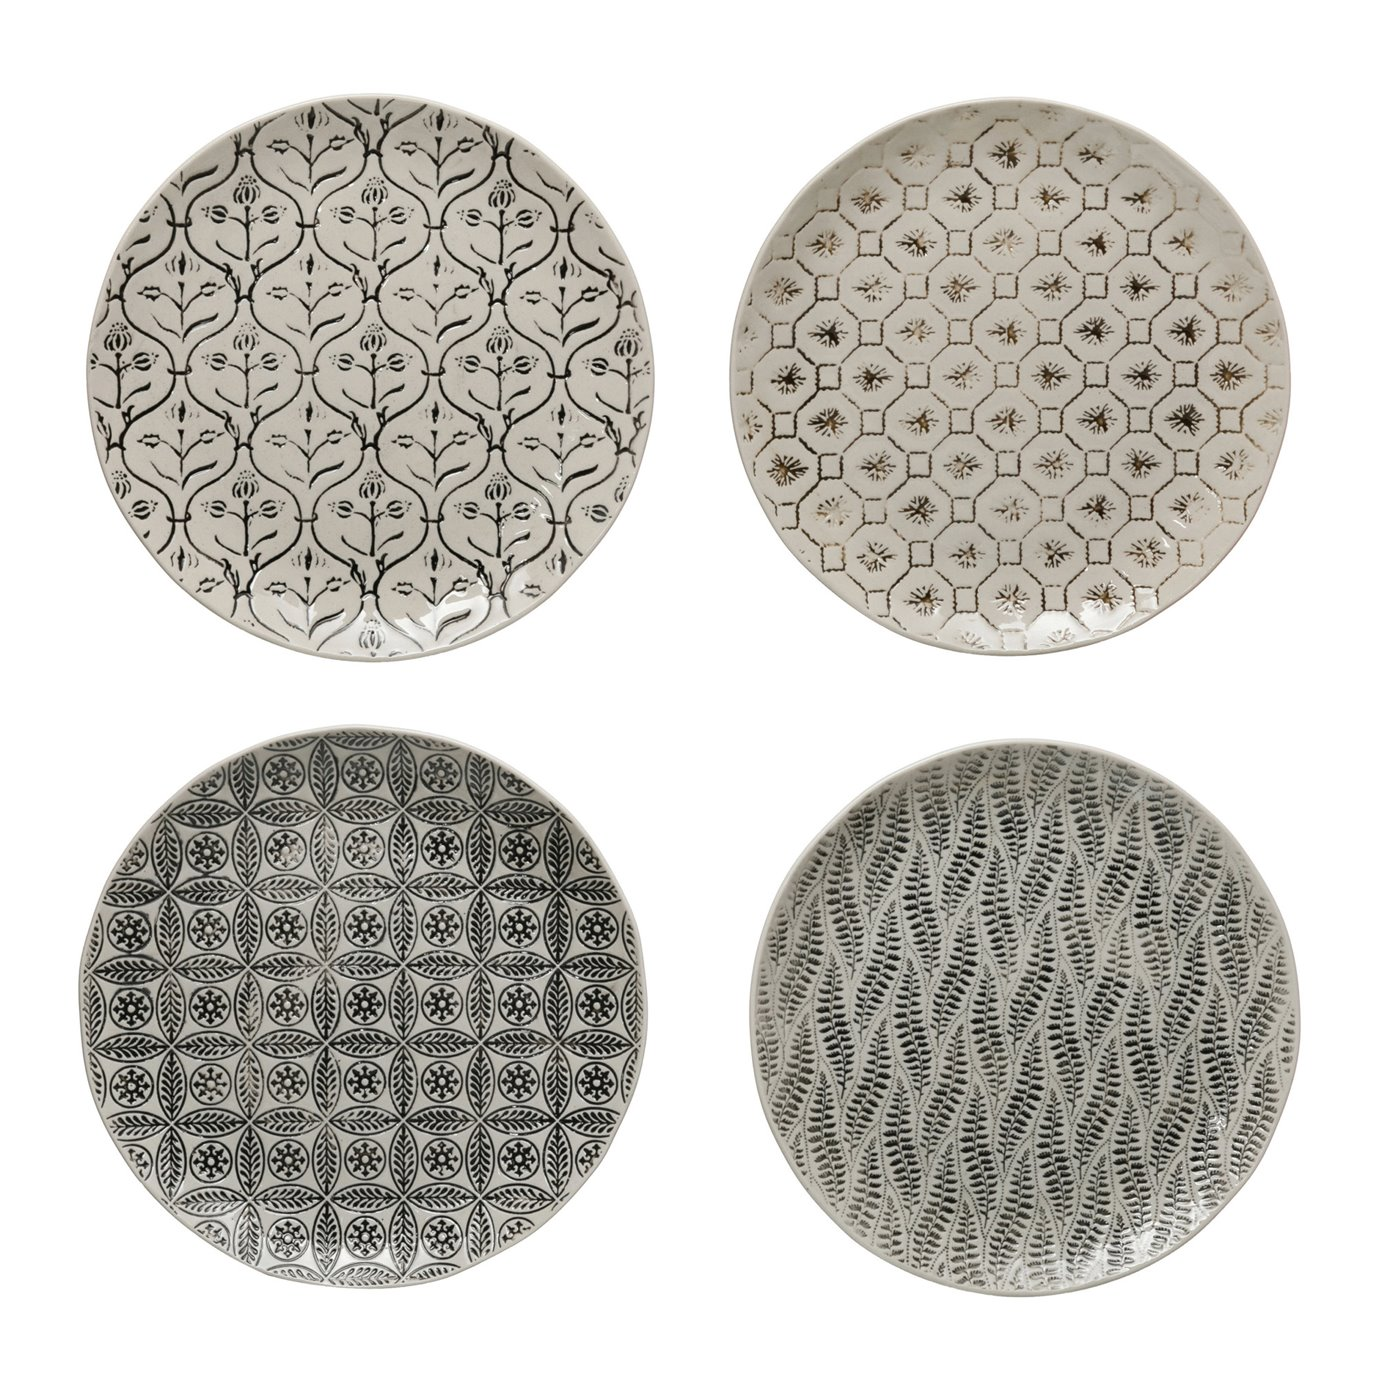 Round Hand-Stamped Stoneware Plate w/ Embossed Pattern, Black & Cream Color, 4 Styles